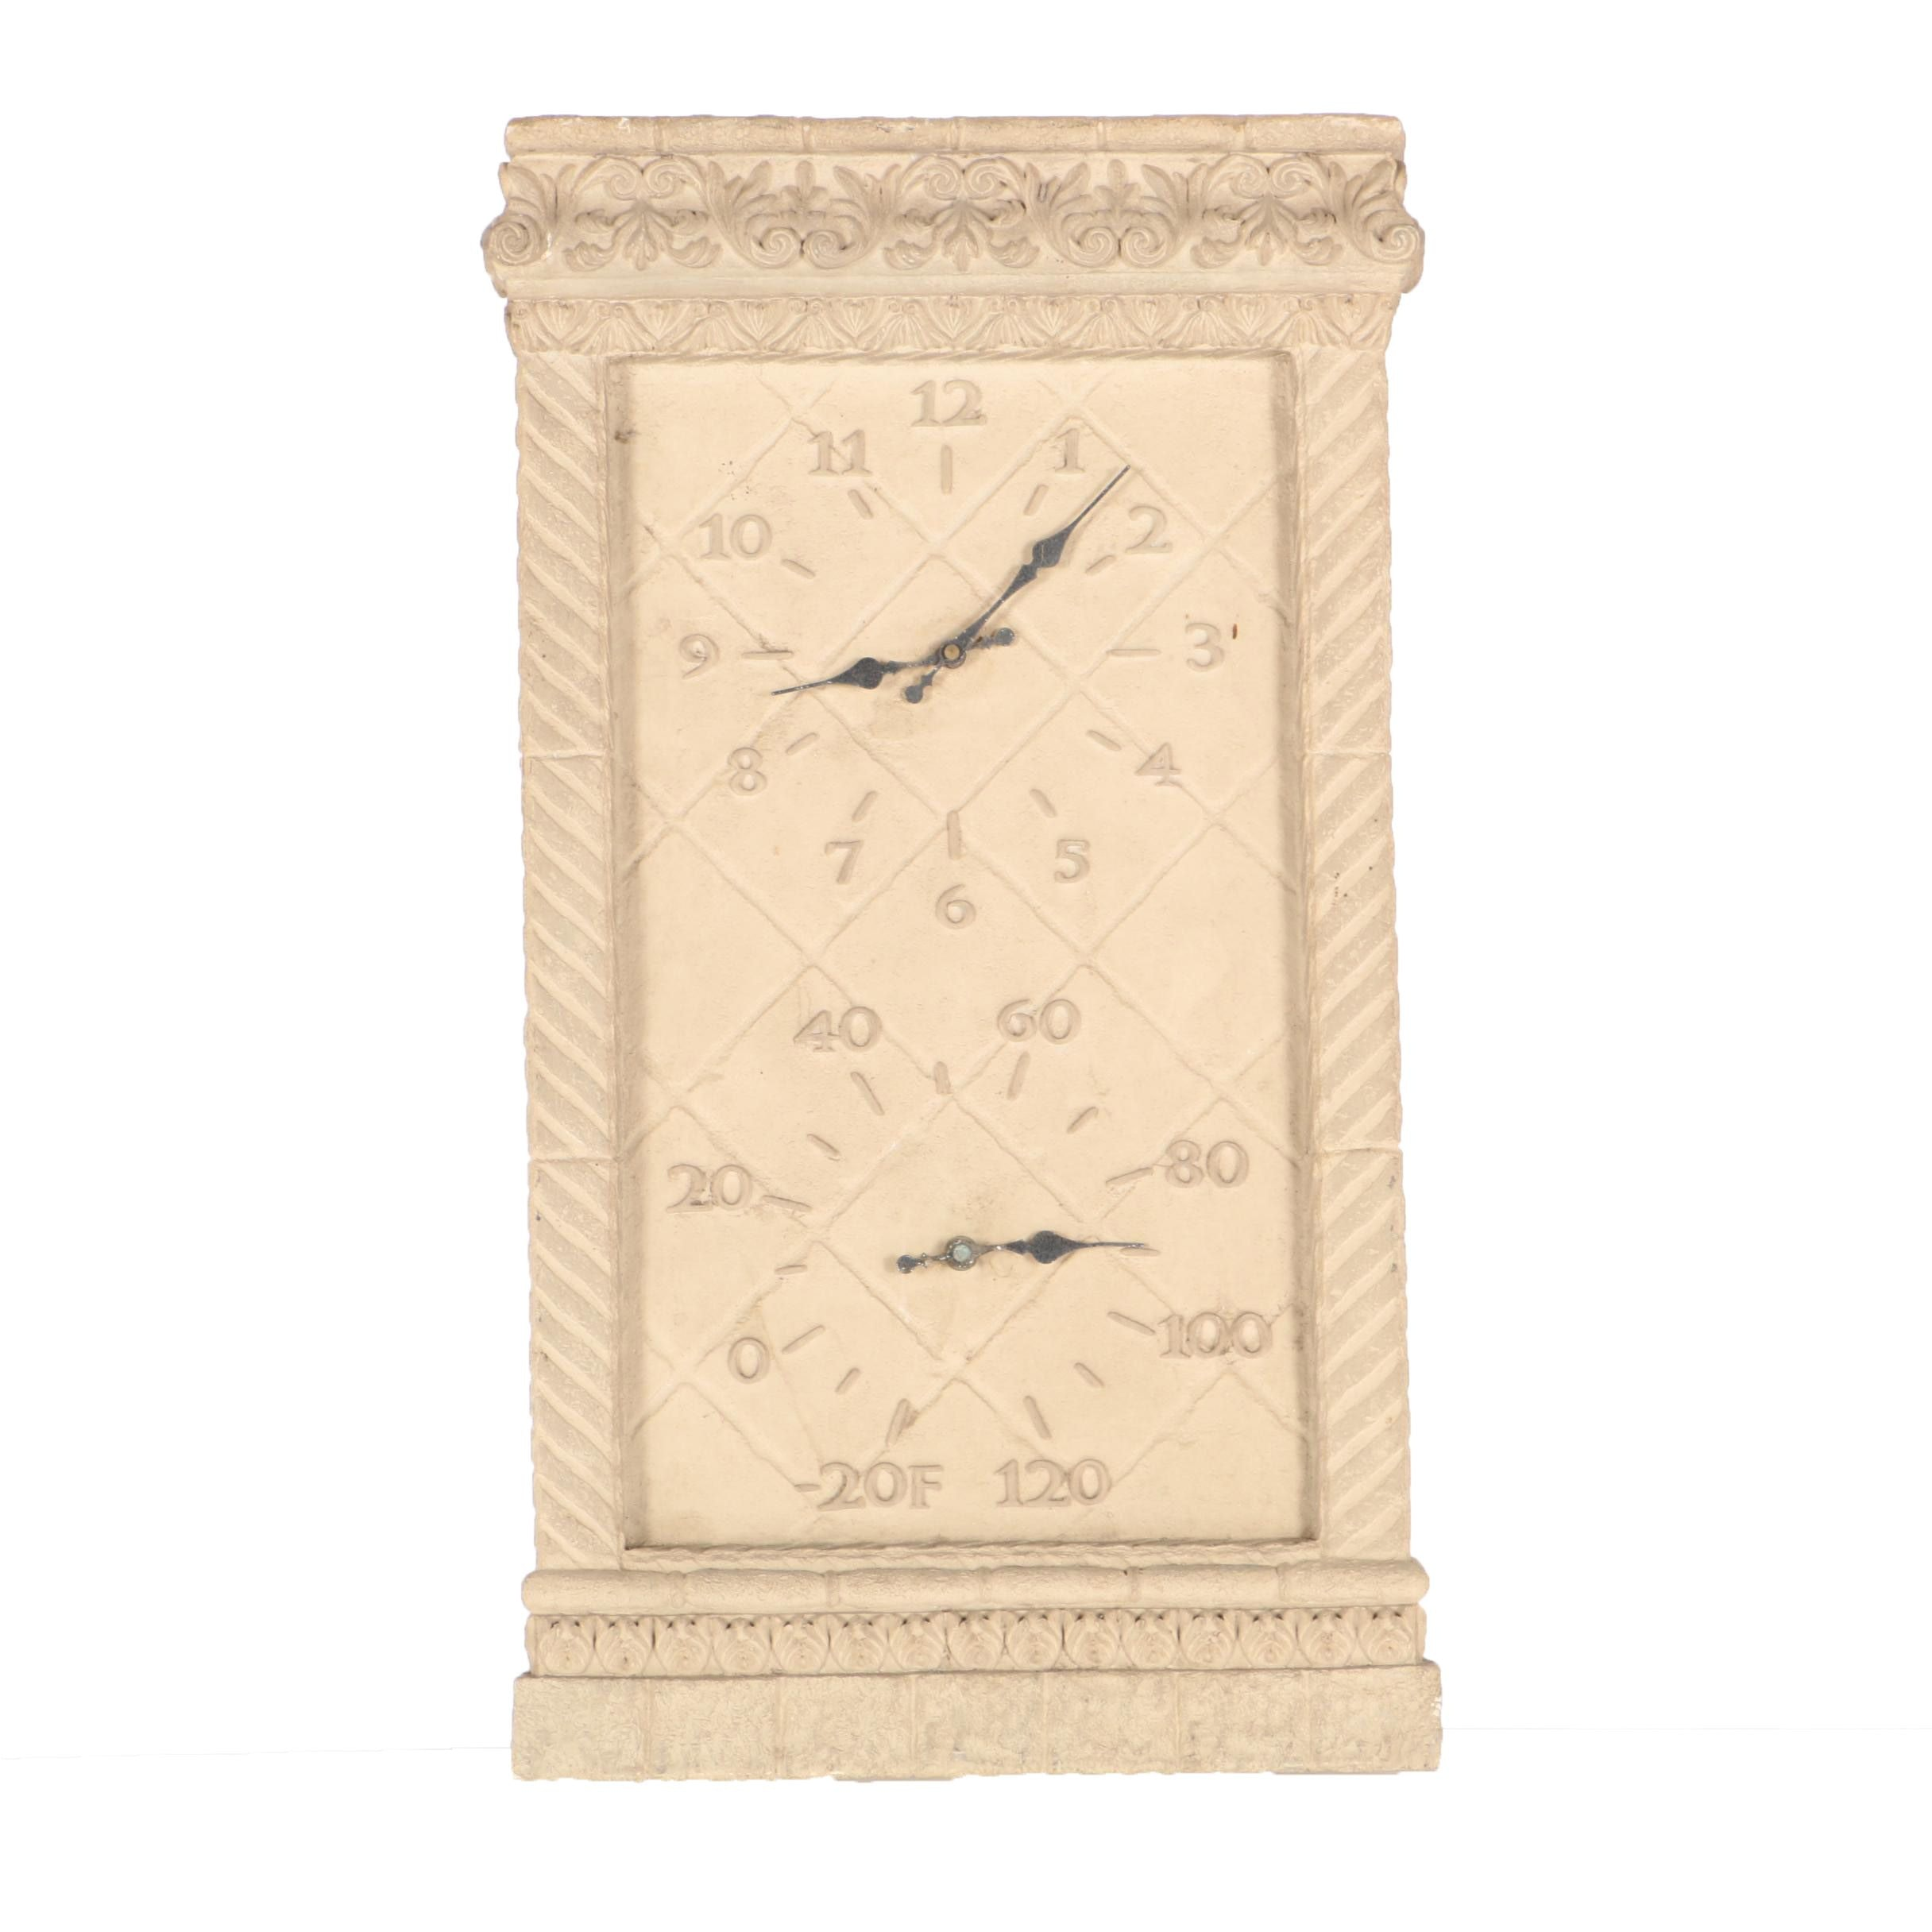 Hanging Stone Outdoor Wall Clock and Thermometer